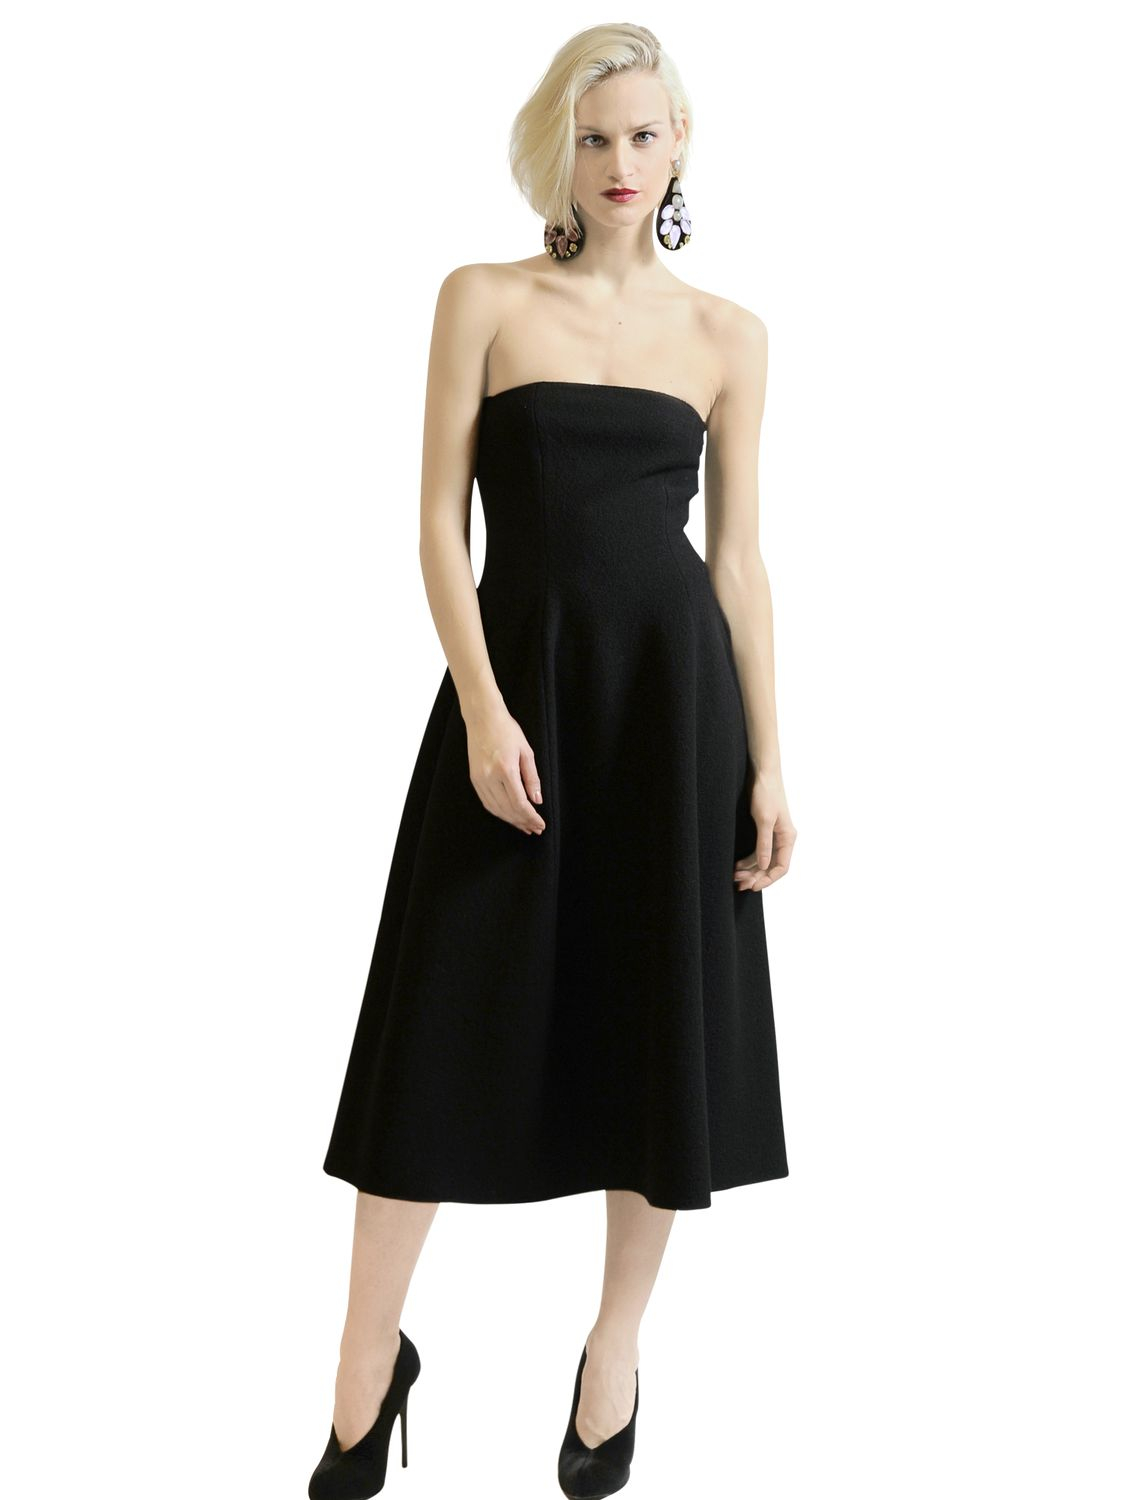 Lyst Emporio Armani Strapless Boiled Wool Dress In Black